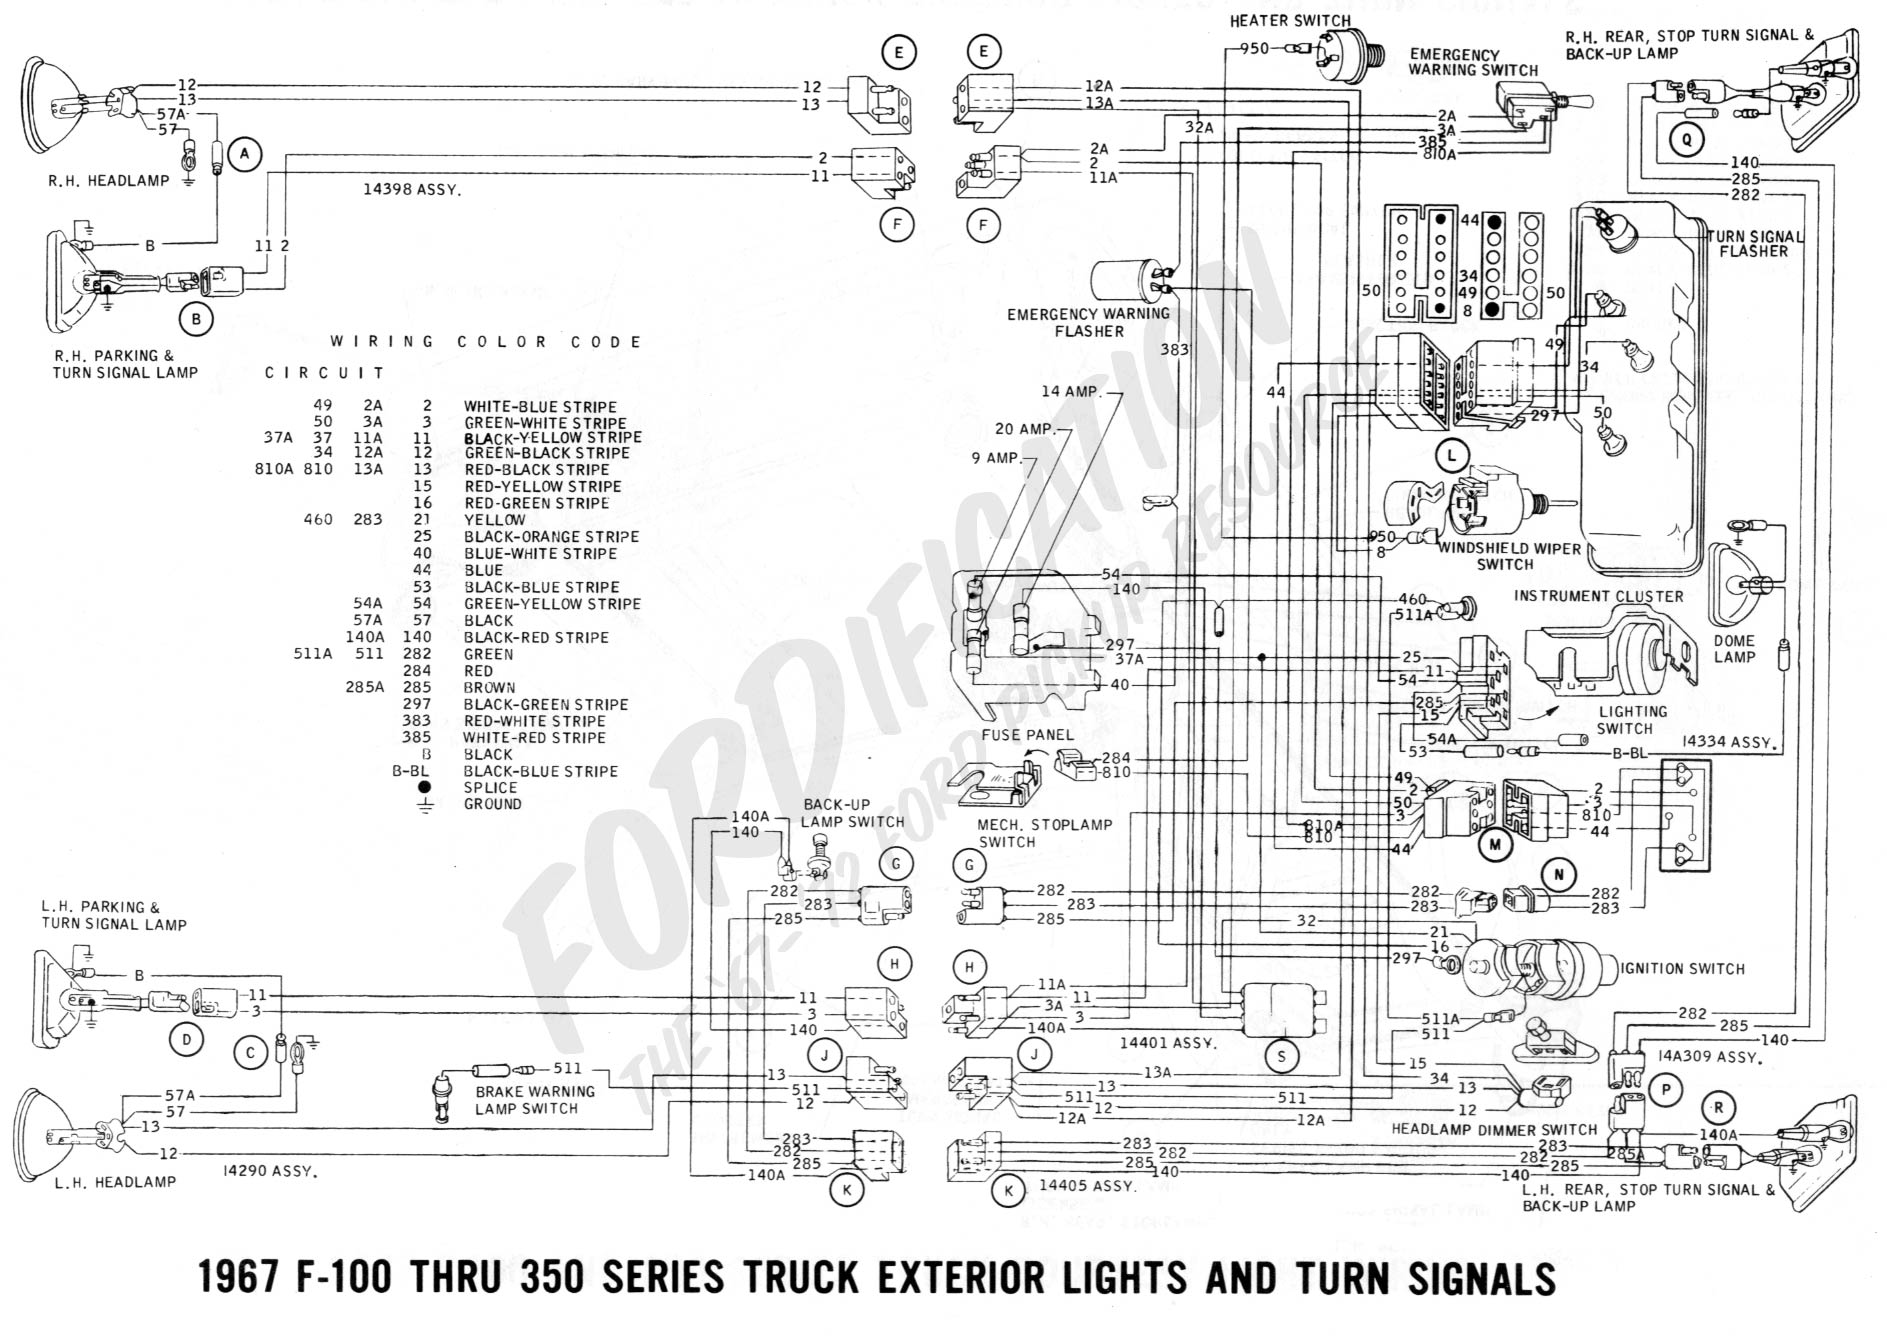 Wiring Diagram 1970 Ford F 250 Opinions About Wiring Diagram \u2022 Ford  Truck Radio Wiring Diagram 2006 Ford Truck Wiring Diagram